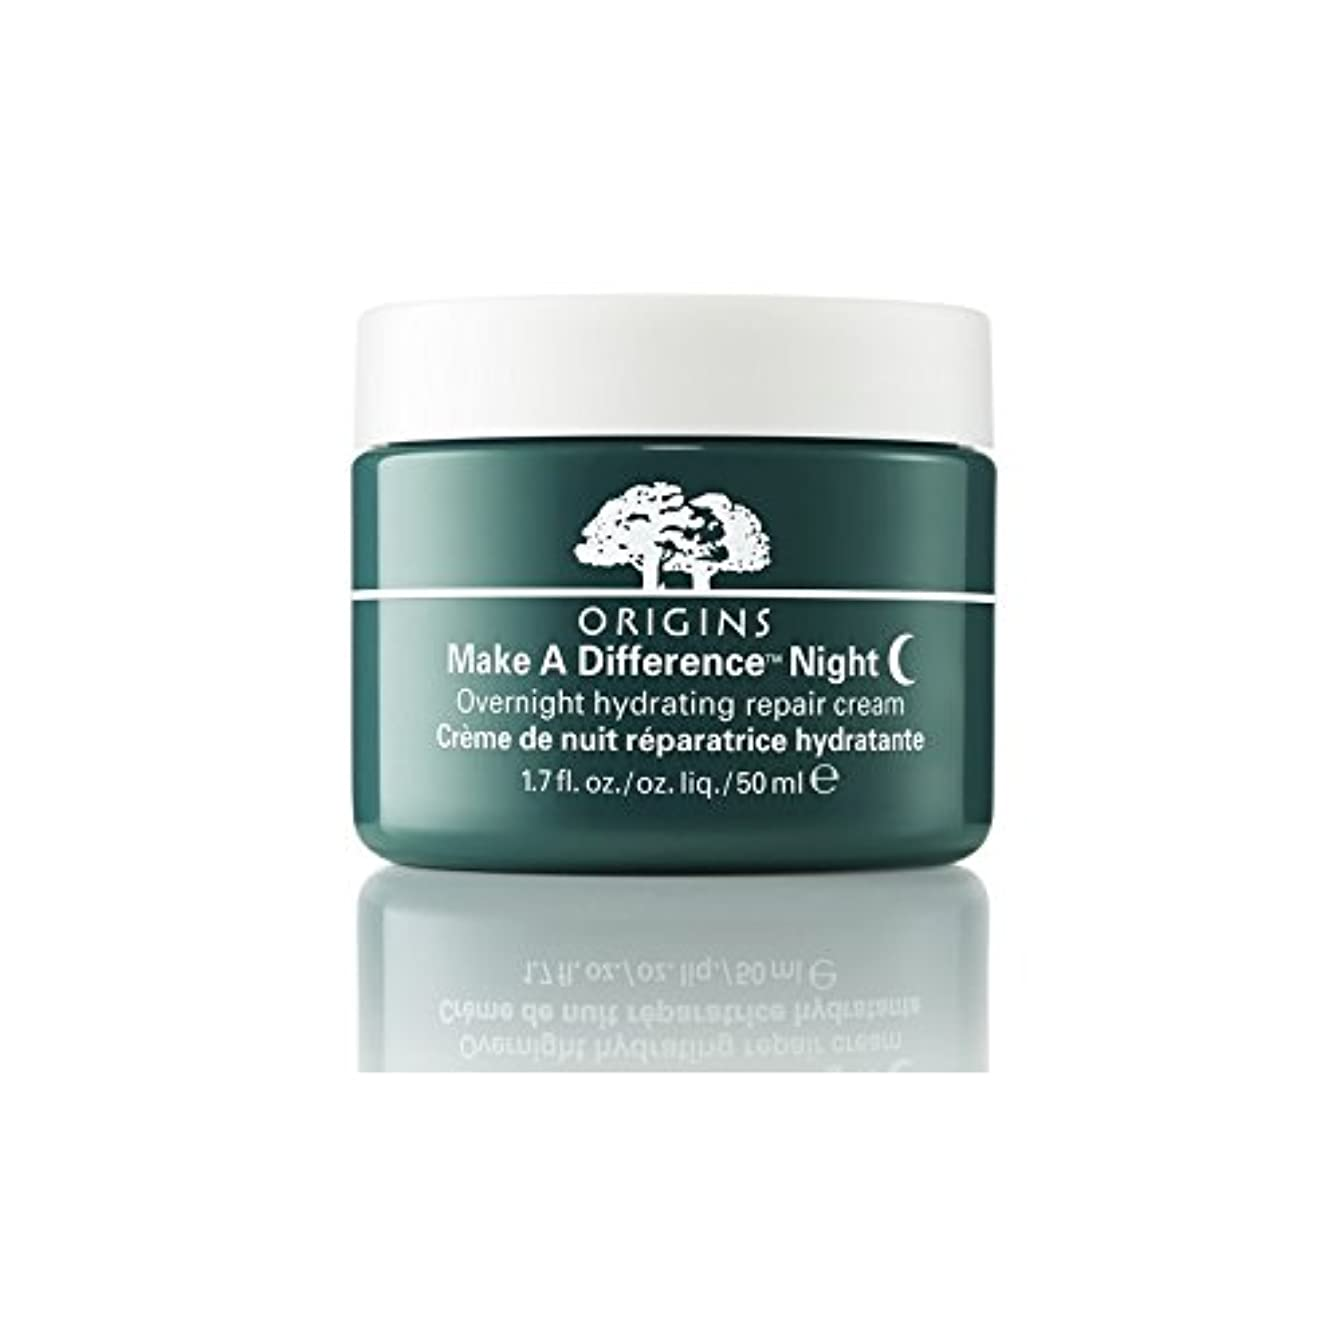 Origins Make A Difference Overnight Hydrating Repair Cream 50ml (Pack of 6) - 起源は違い、一晩水和リペアクリーム50ミリリットルを作ります x6...